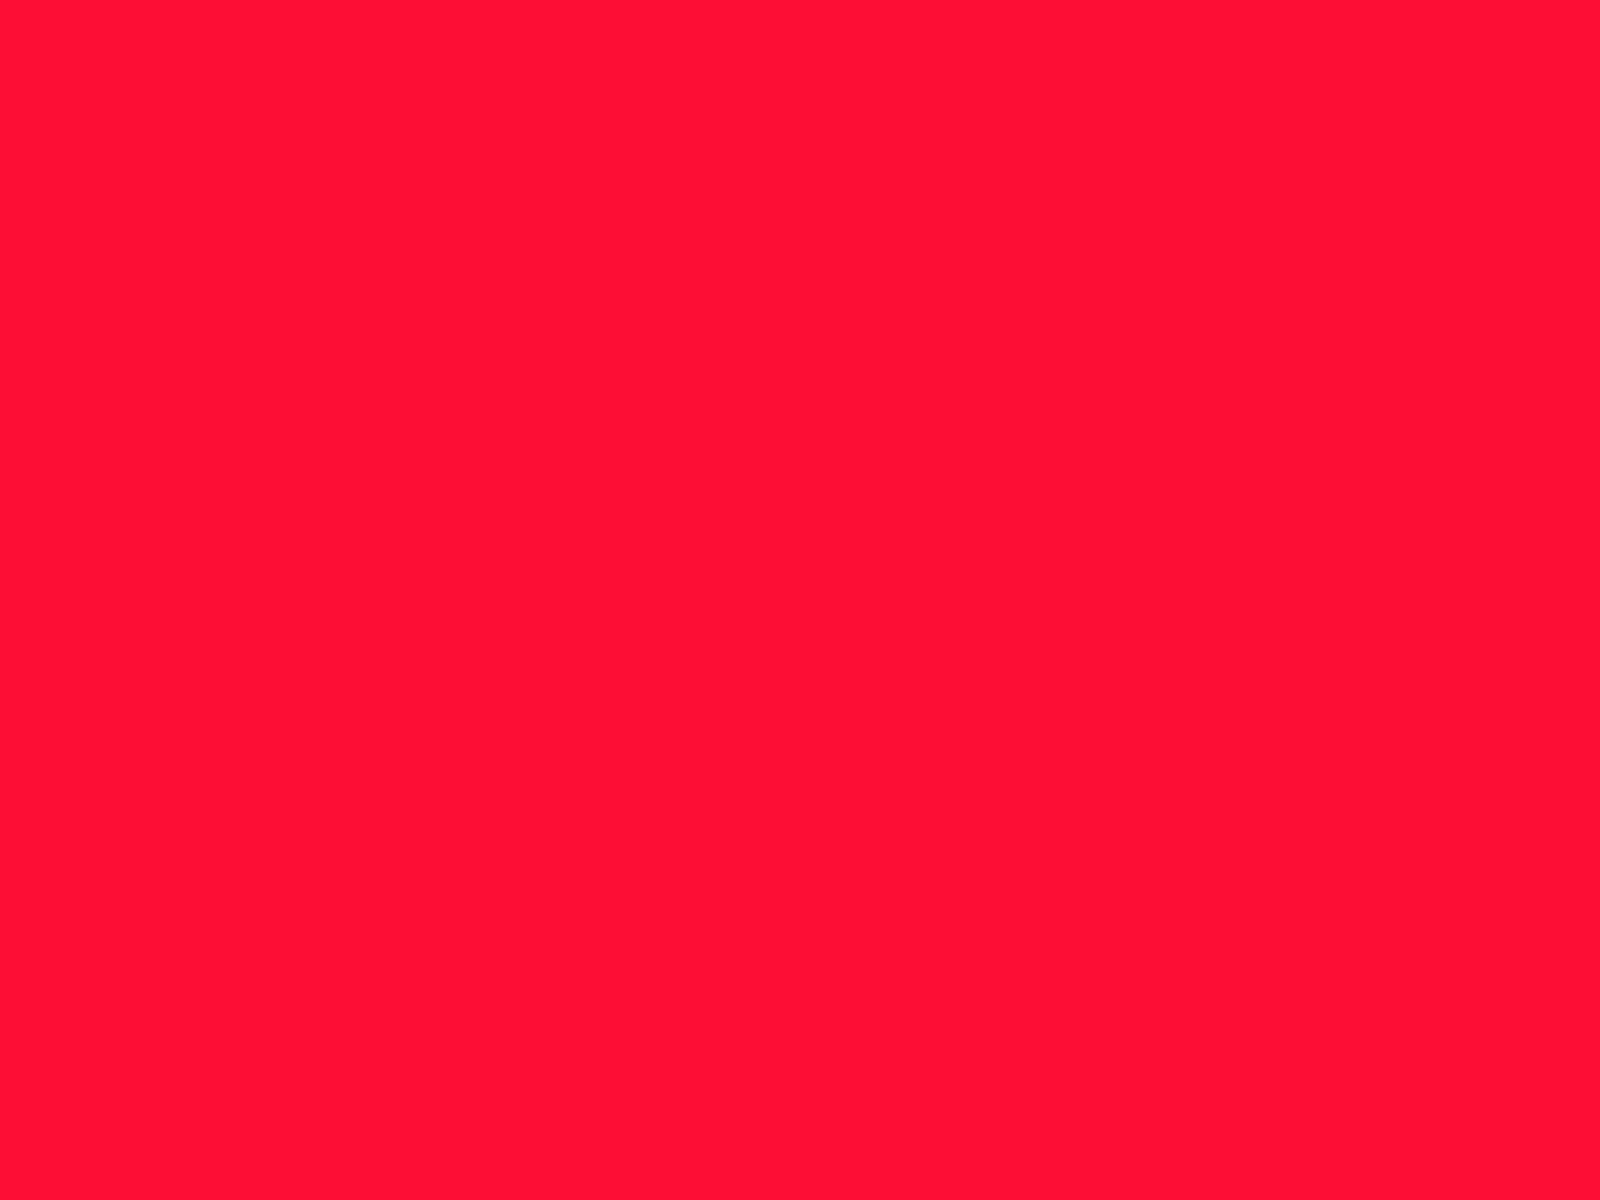 1600x1200 Tractor Red Solid Color Background